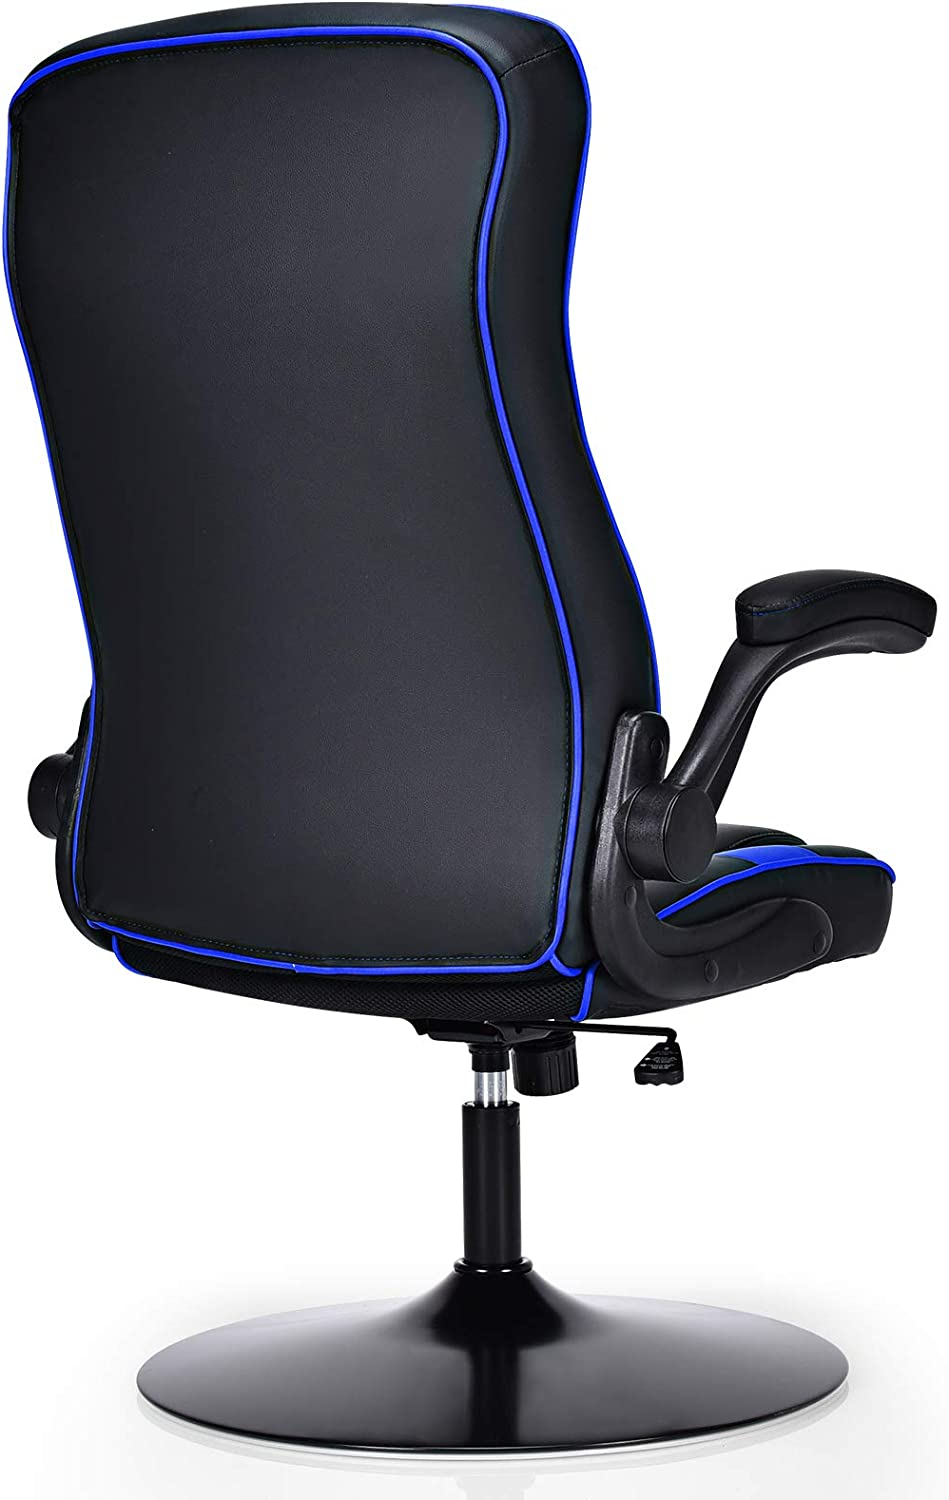 High Back Leather Rocking Racing Chairs with Adjustable Armrest and Lumbar Support Blue+Black Ergonomic Swivel Computer Desk Chairs for Home Office COSTWAY Gaming Chair